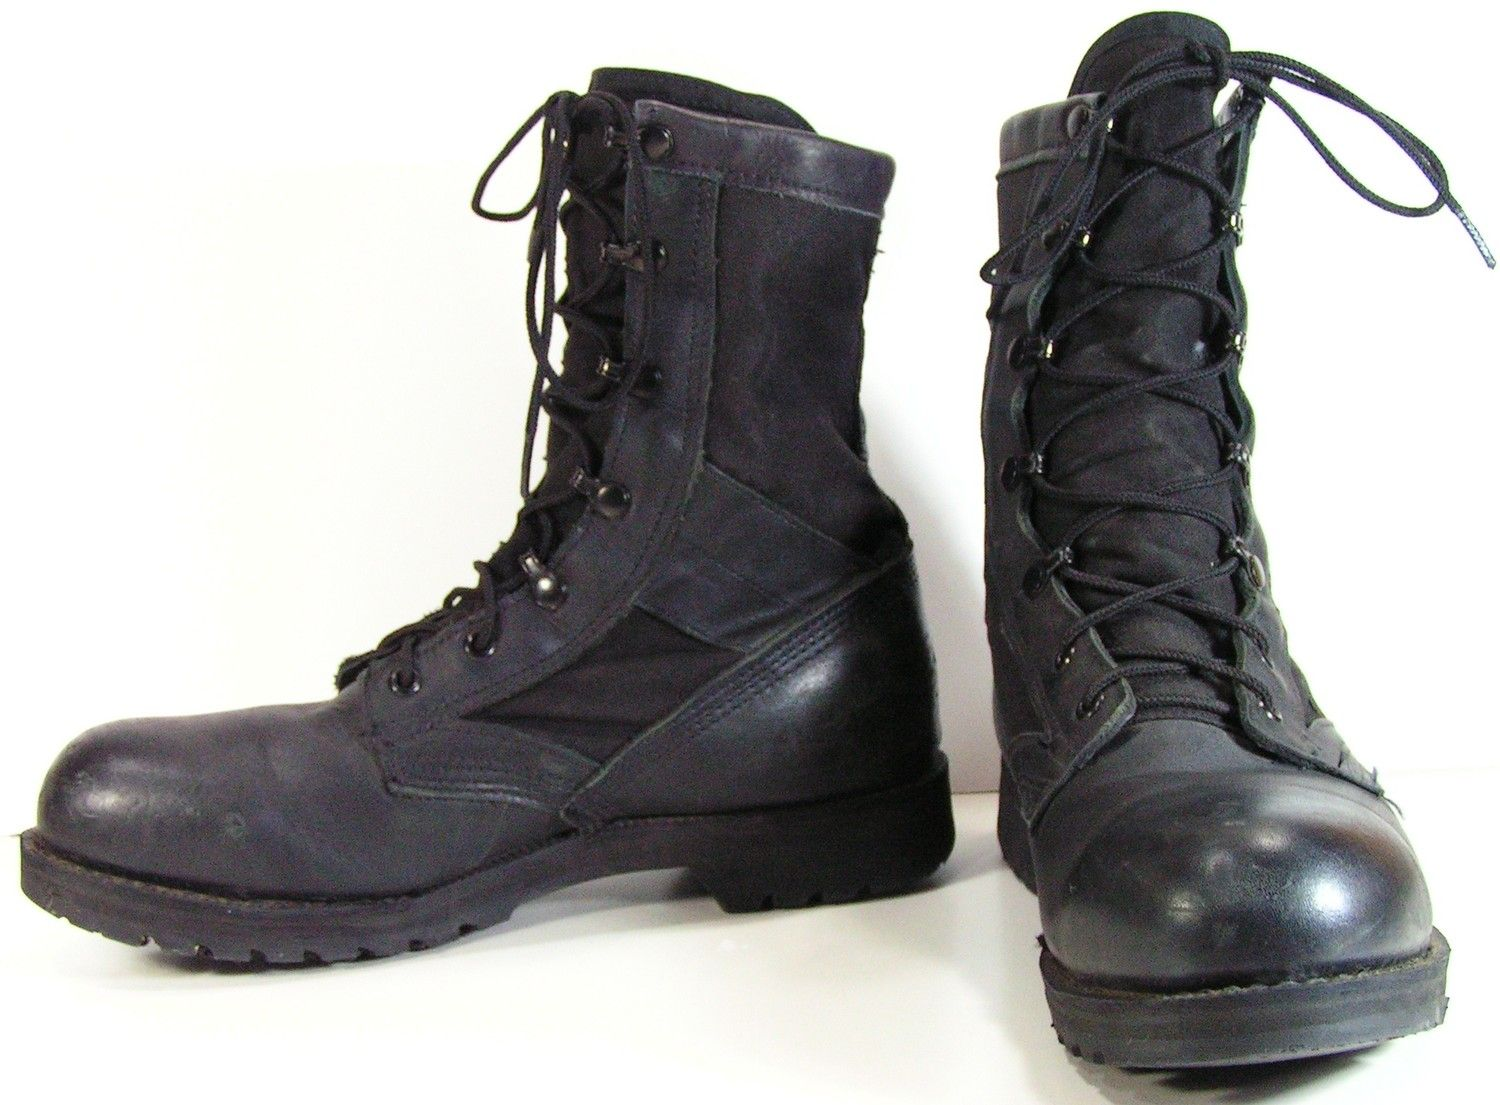 Black Military Combat Boots - Cr Boot